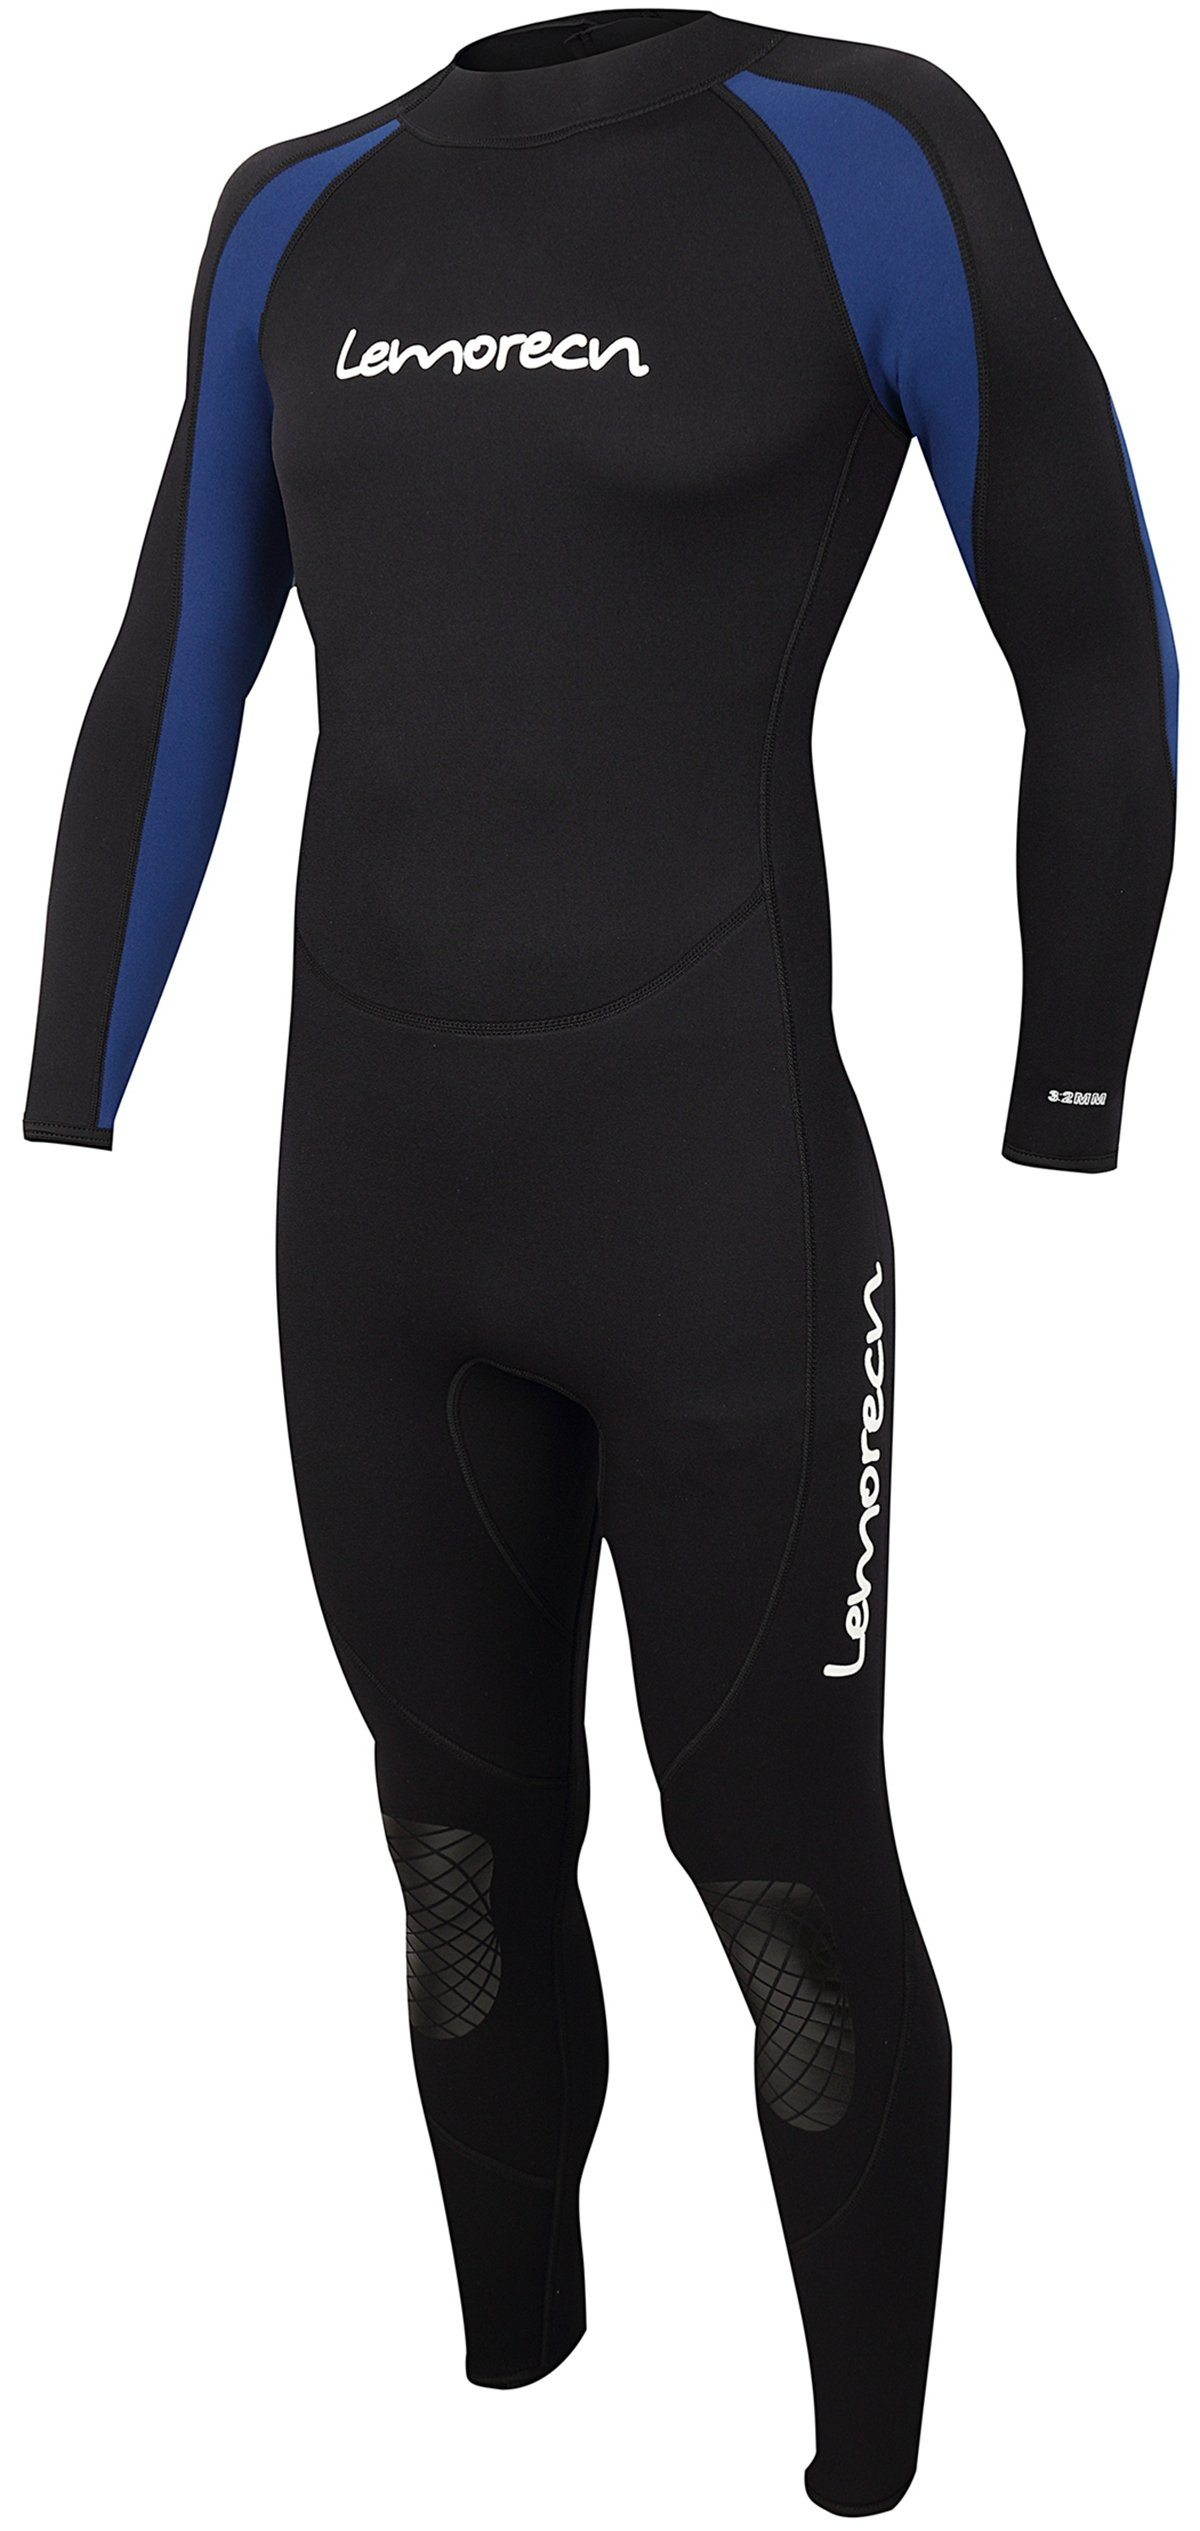 Lemorecn Wetsuits Jumpsuit Neoprene 3/2mm Full Body Diving Suit(3031,XL)